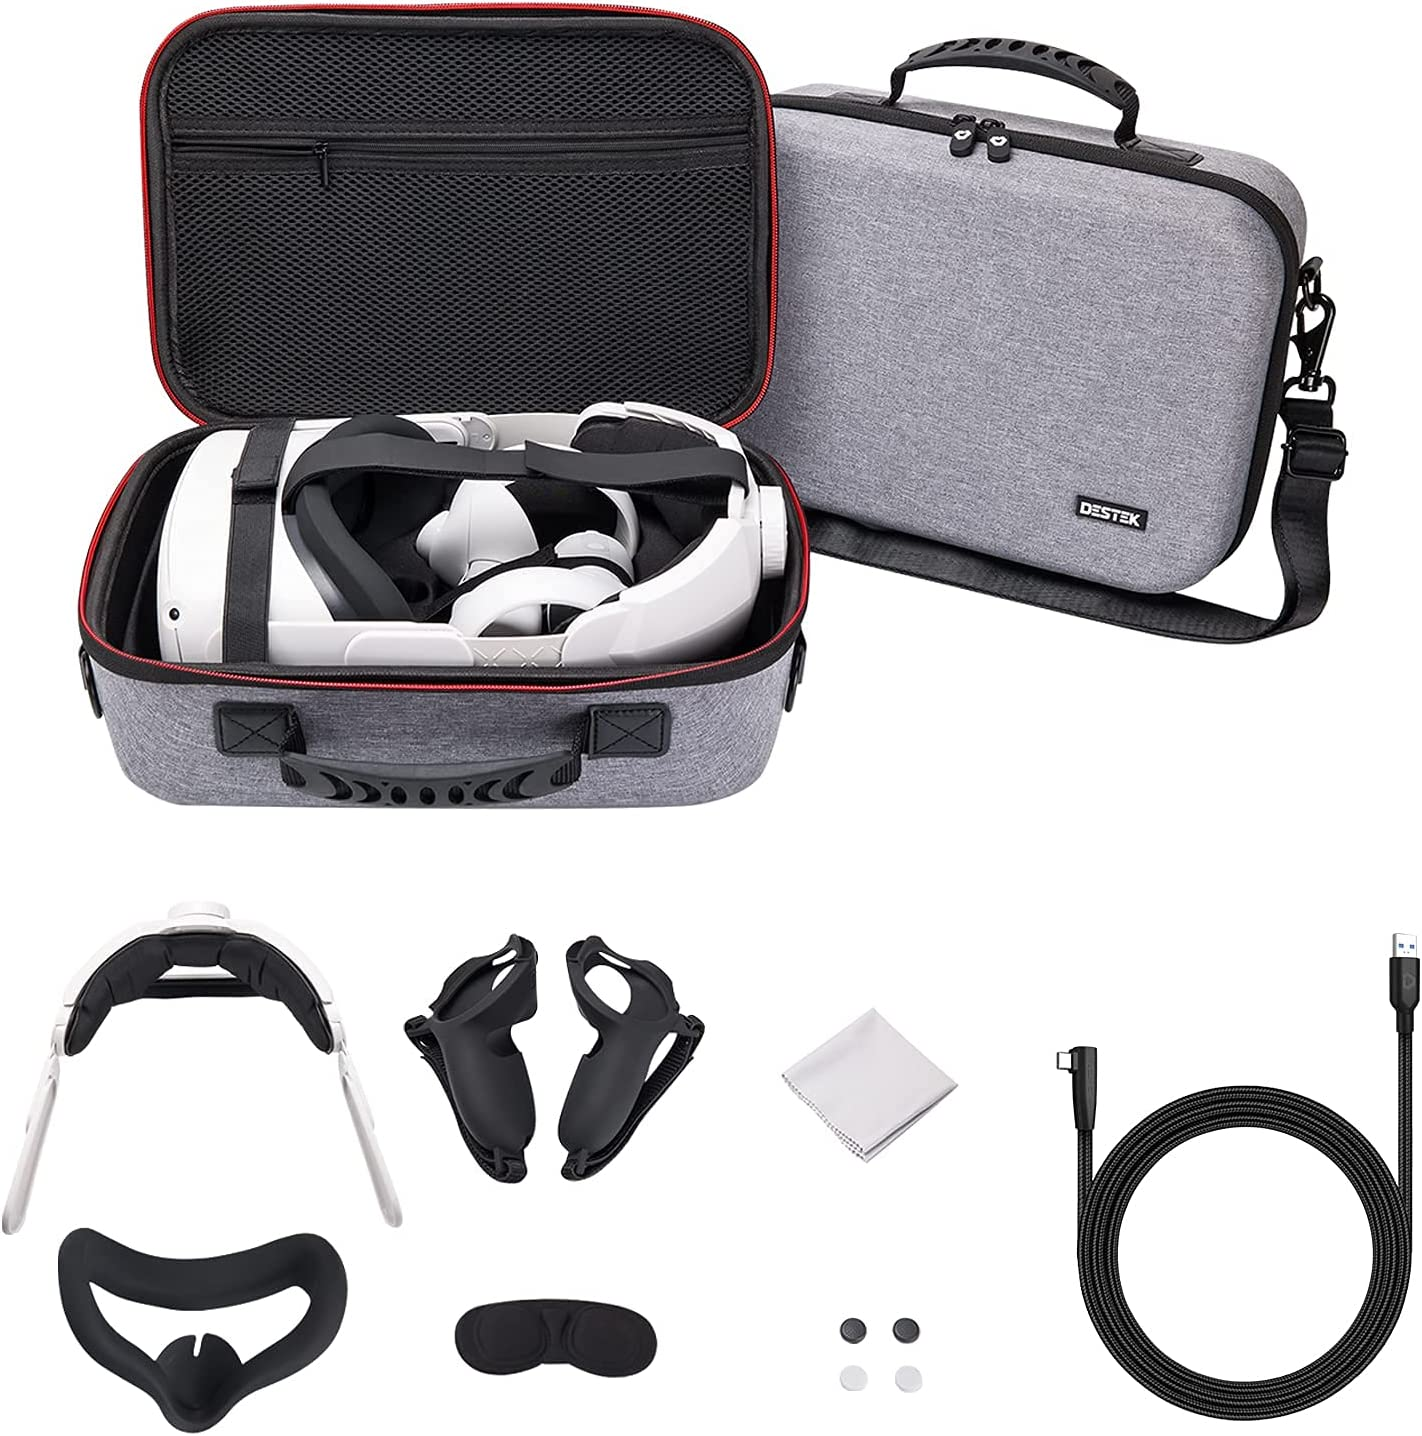 DESTEK All in One Oculus Quest 2 Travel Case Accessories Set and 16FT Oculus Link Cable - 8PCS